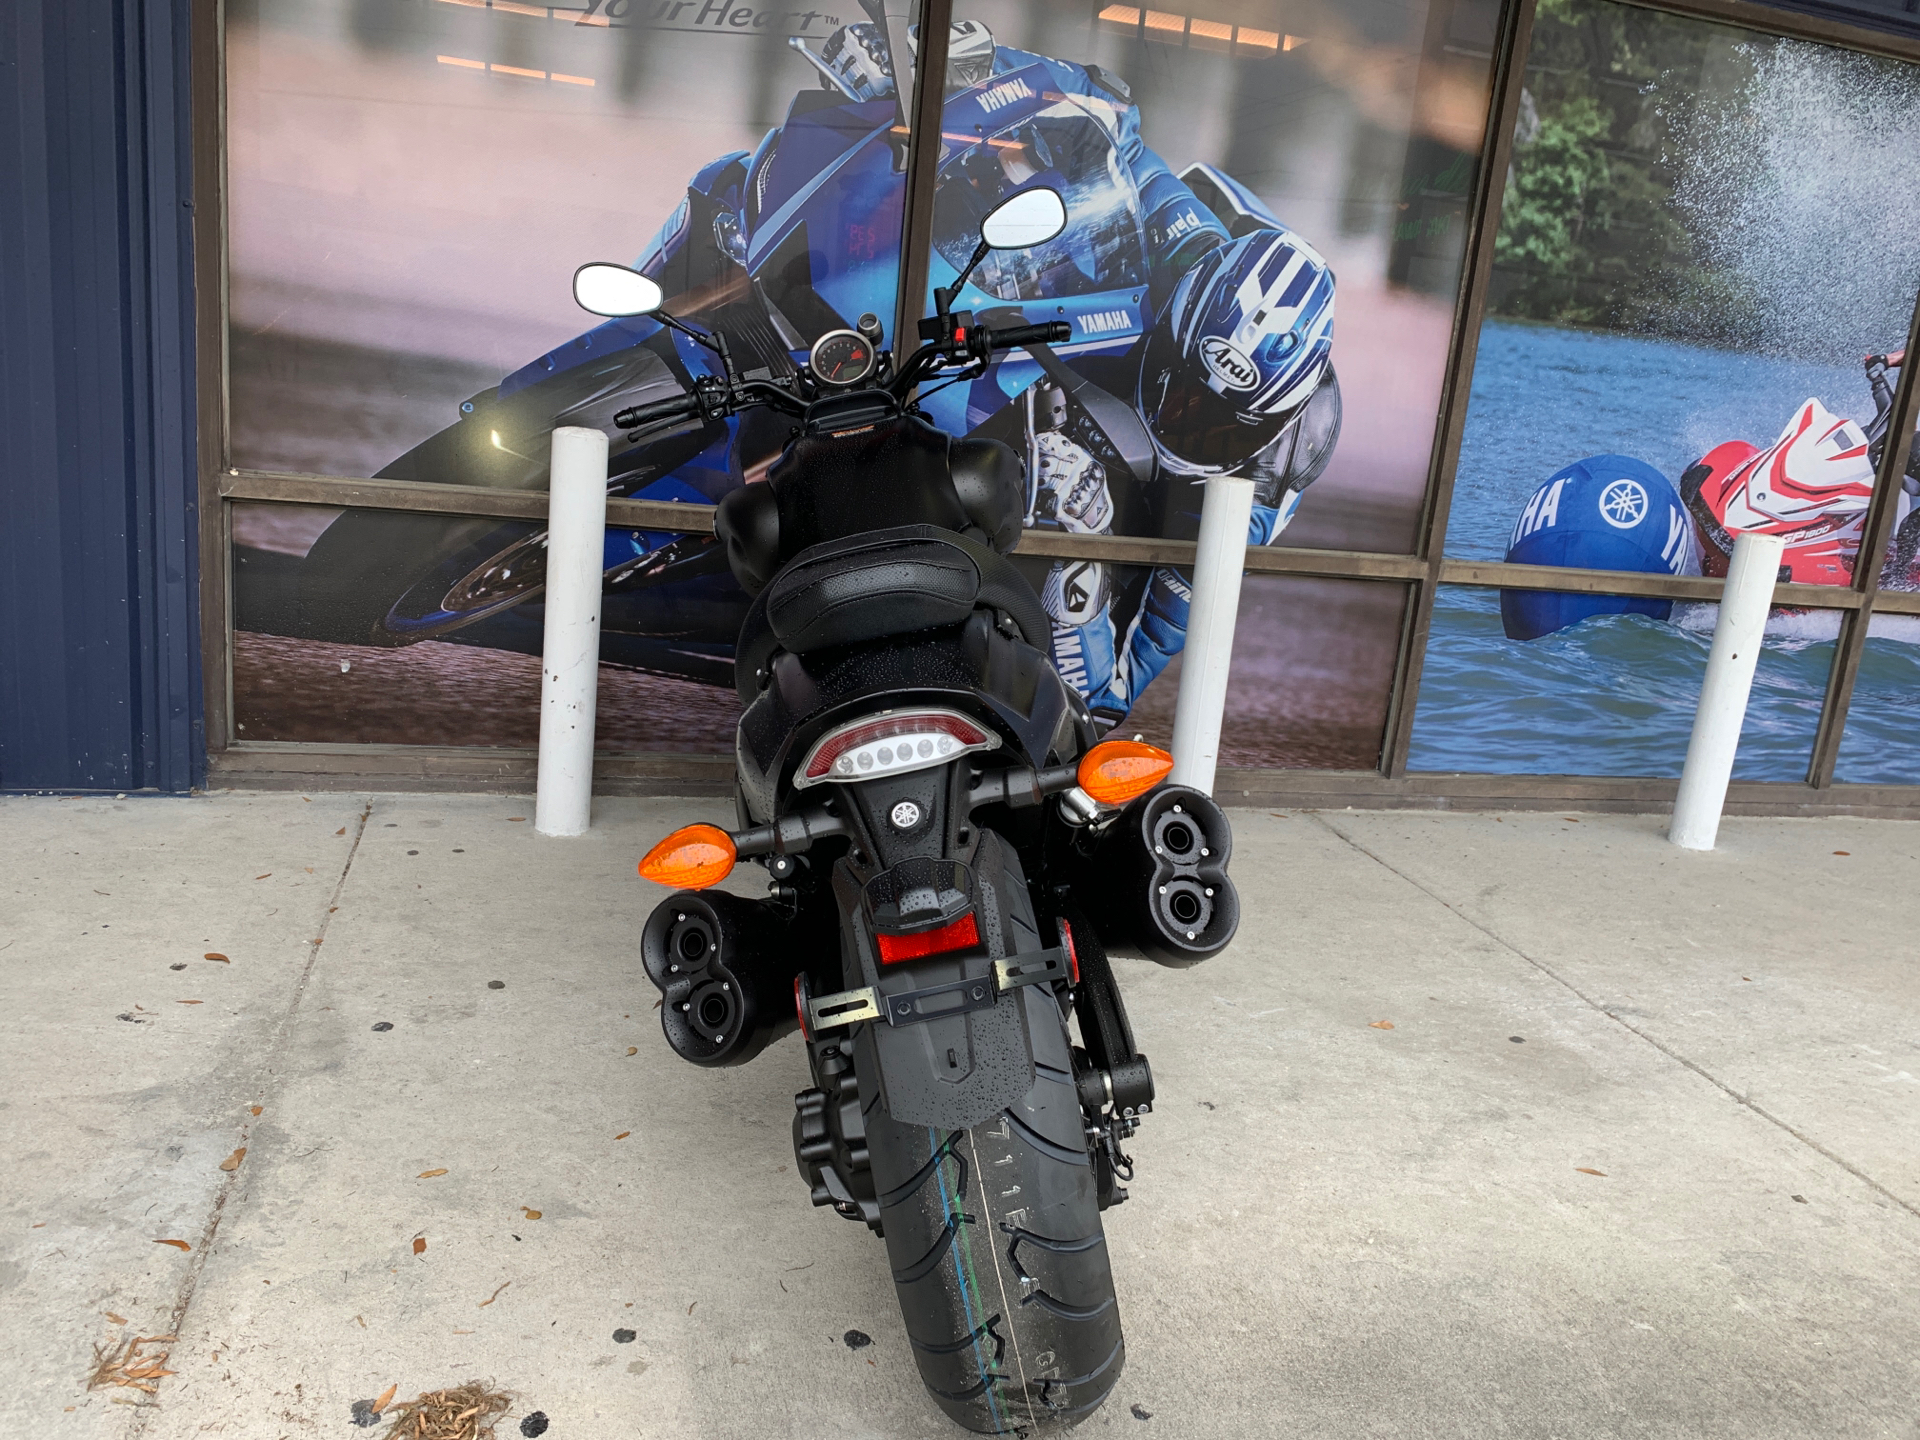 2020 Yamaha VMAX in Orlando, Florida - Photo 6